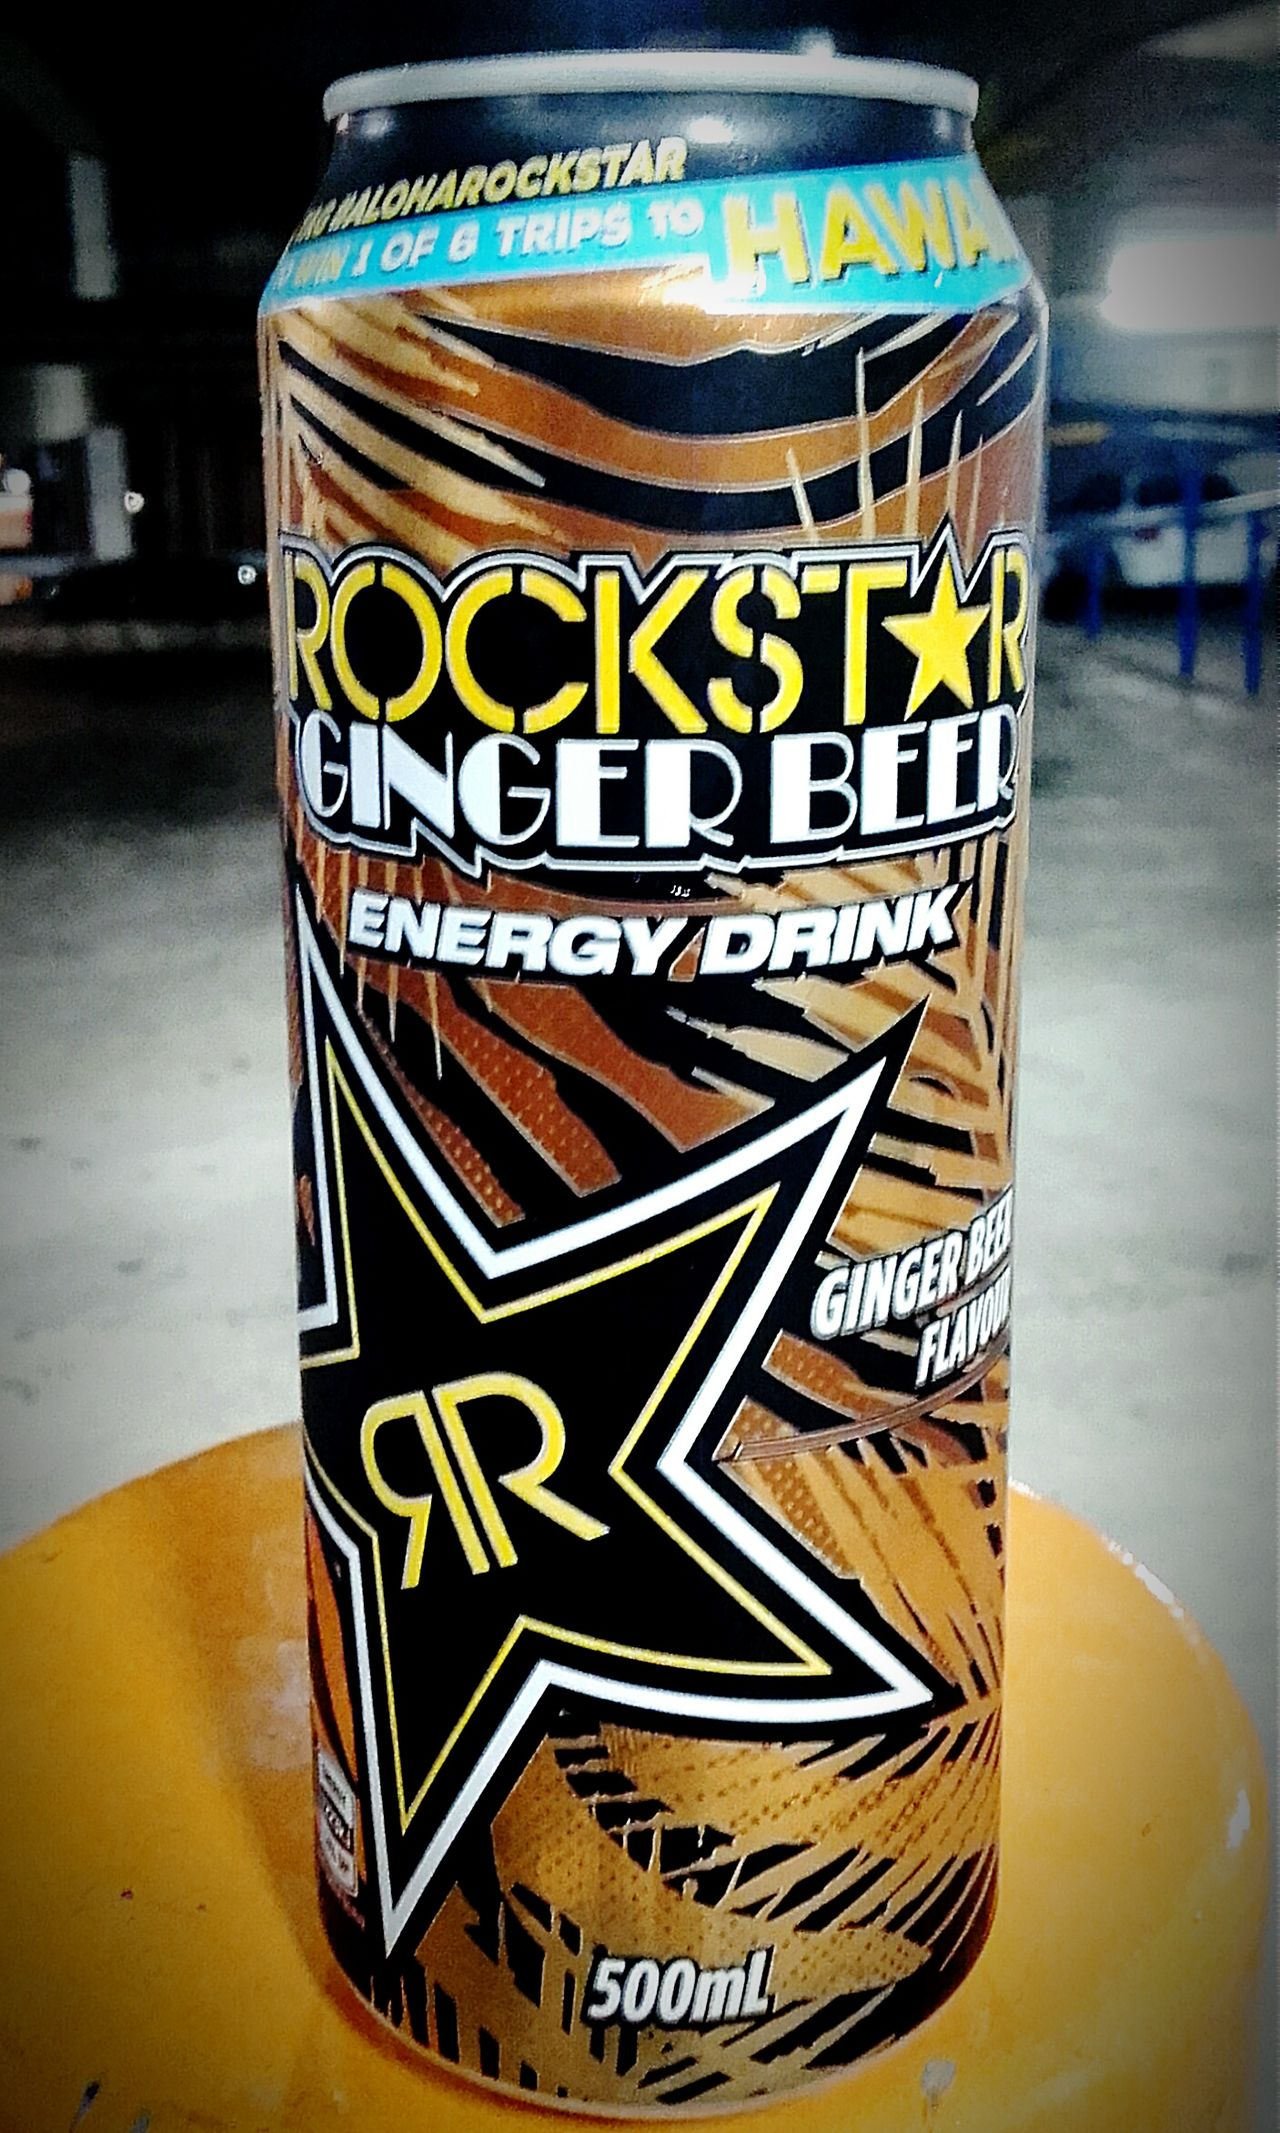 Rockstar Energy Rockstarenergy ROCKSTAR Energy Drinks Can Drink Cans Drinkcans Ginger Beer Rockstar ☆ Rockst☆r Rockstar Energy Drink Rockstar Energy Drink, Ginger Beer Rockstar Ginger Beer Energy Drink Rockstar Drink Cans Rockstar Rockstar Rocks On Rockstarenergydrink RockstarGingerBeerFlavor Rockstargingerbeerflavour Gingerbeer Energydrinks Energydrink EnergyDrinkCans Rockst☆r Energy Drinks ROCKST☆R Energy Drink